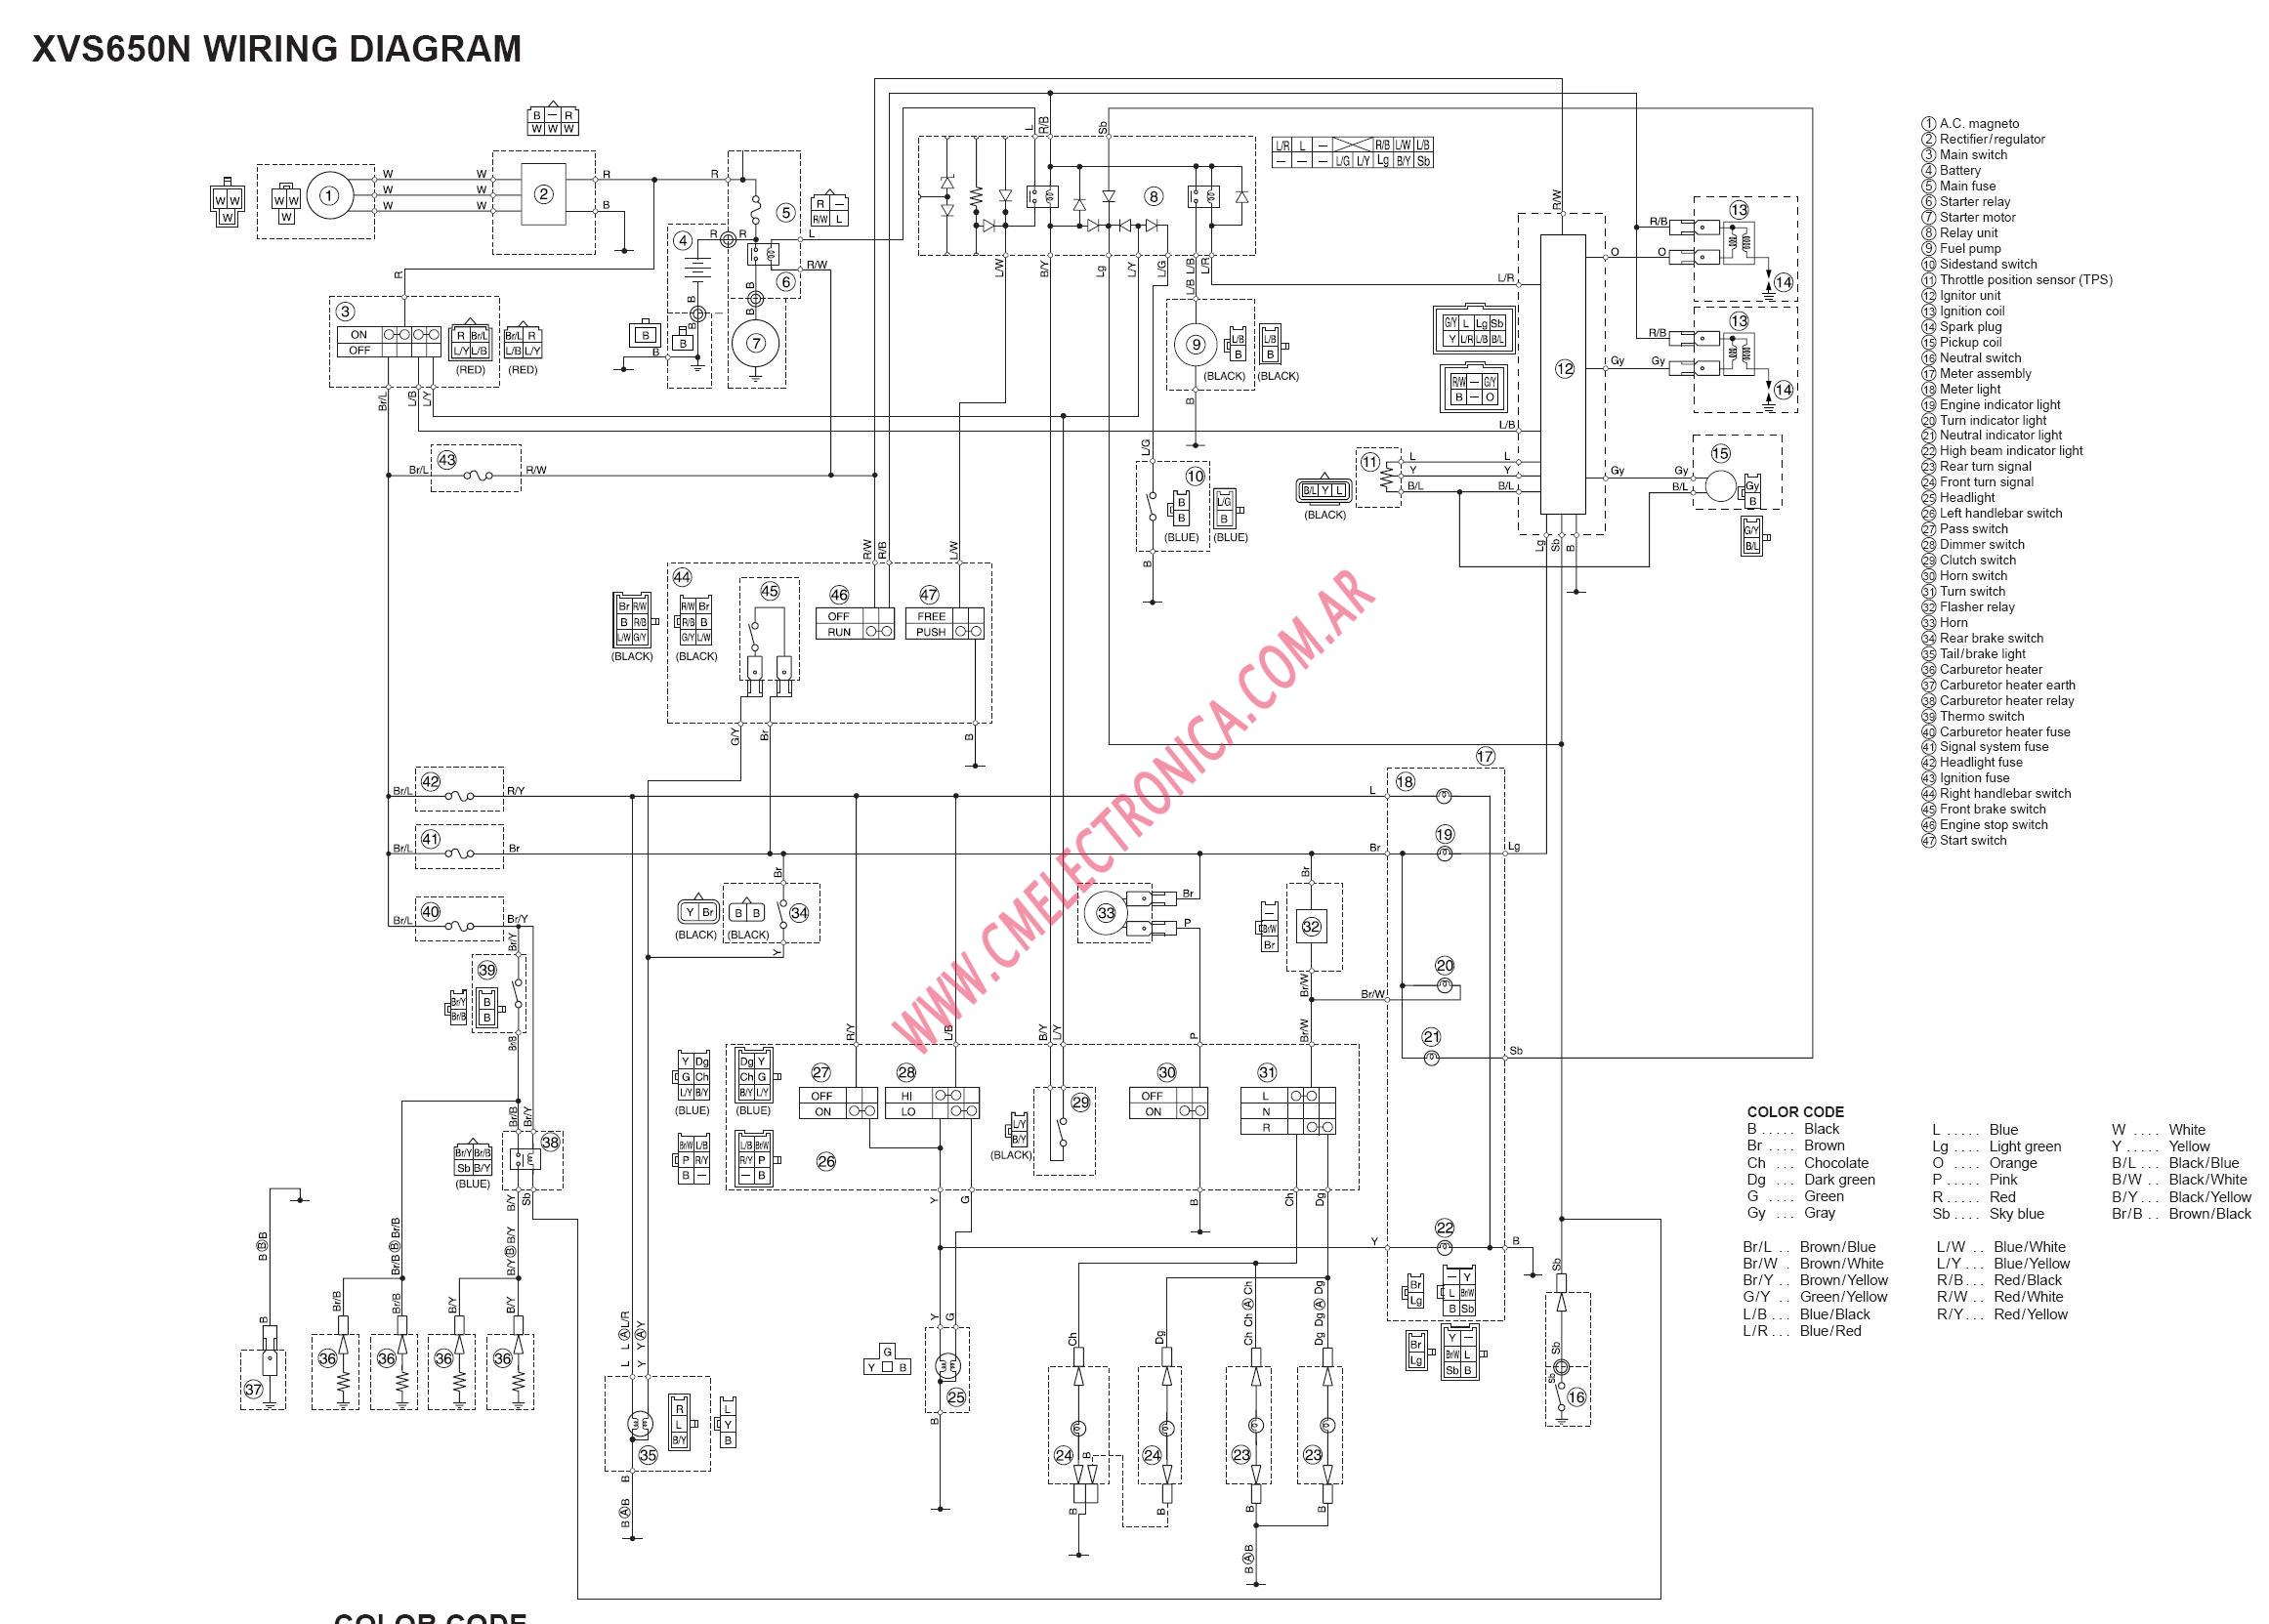 yamaha dragstar xvs650 2000 wiring diagram for 2007 gsxr 600 the wiring diagram readingrat net YZF 600 Wiring Diagram at virtualis.co